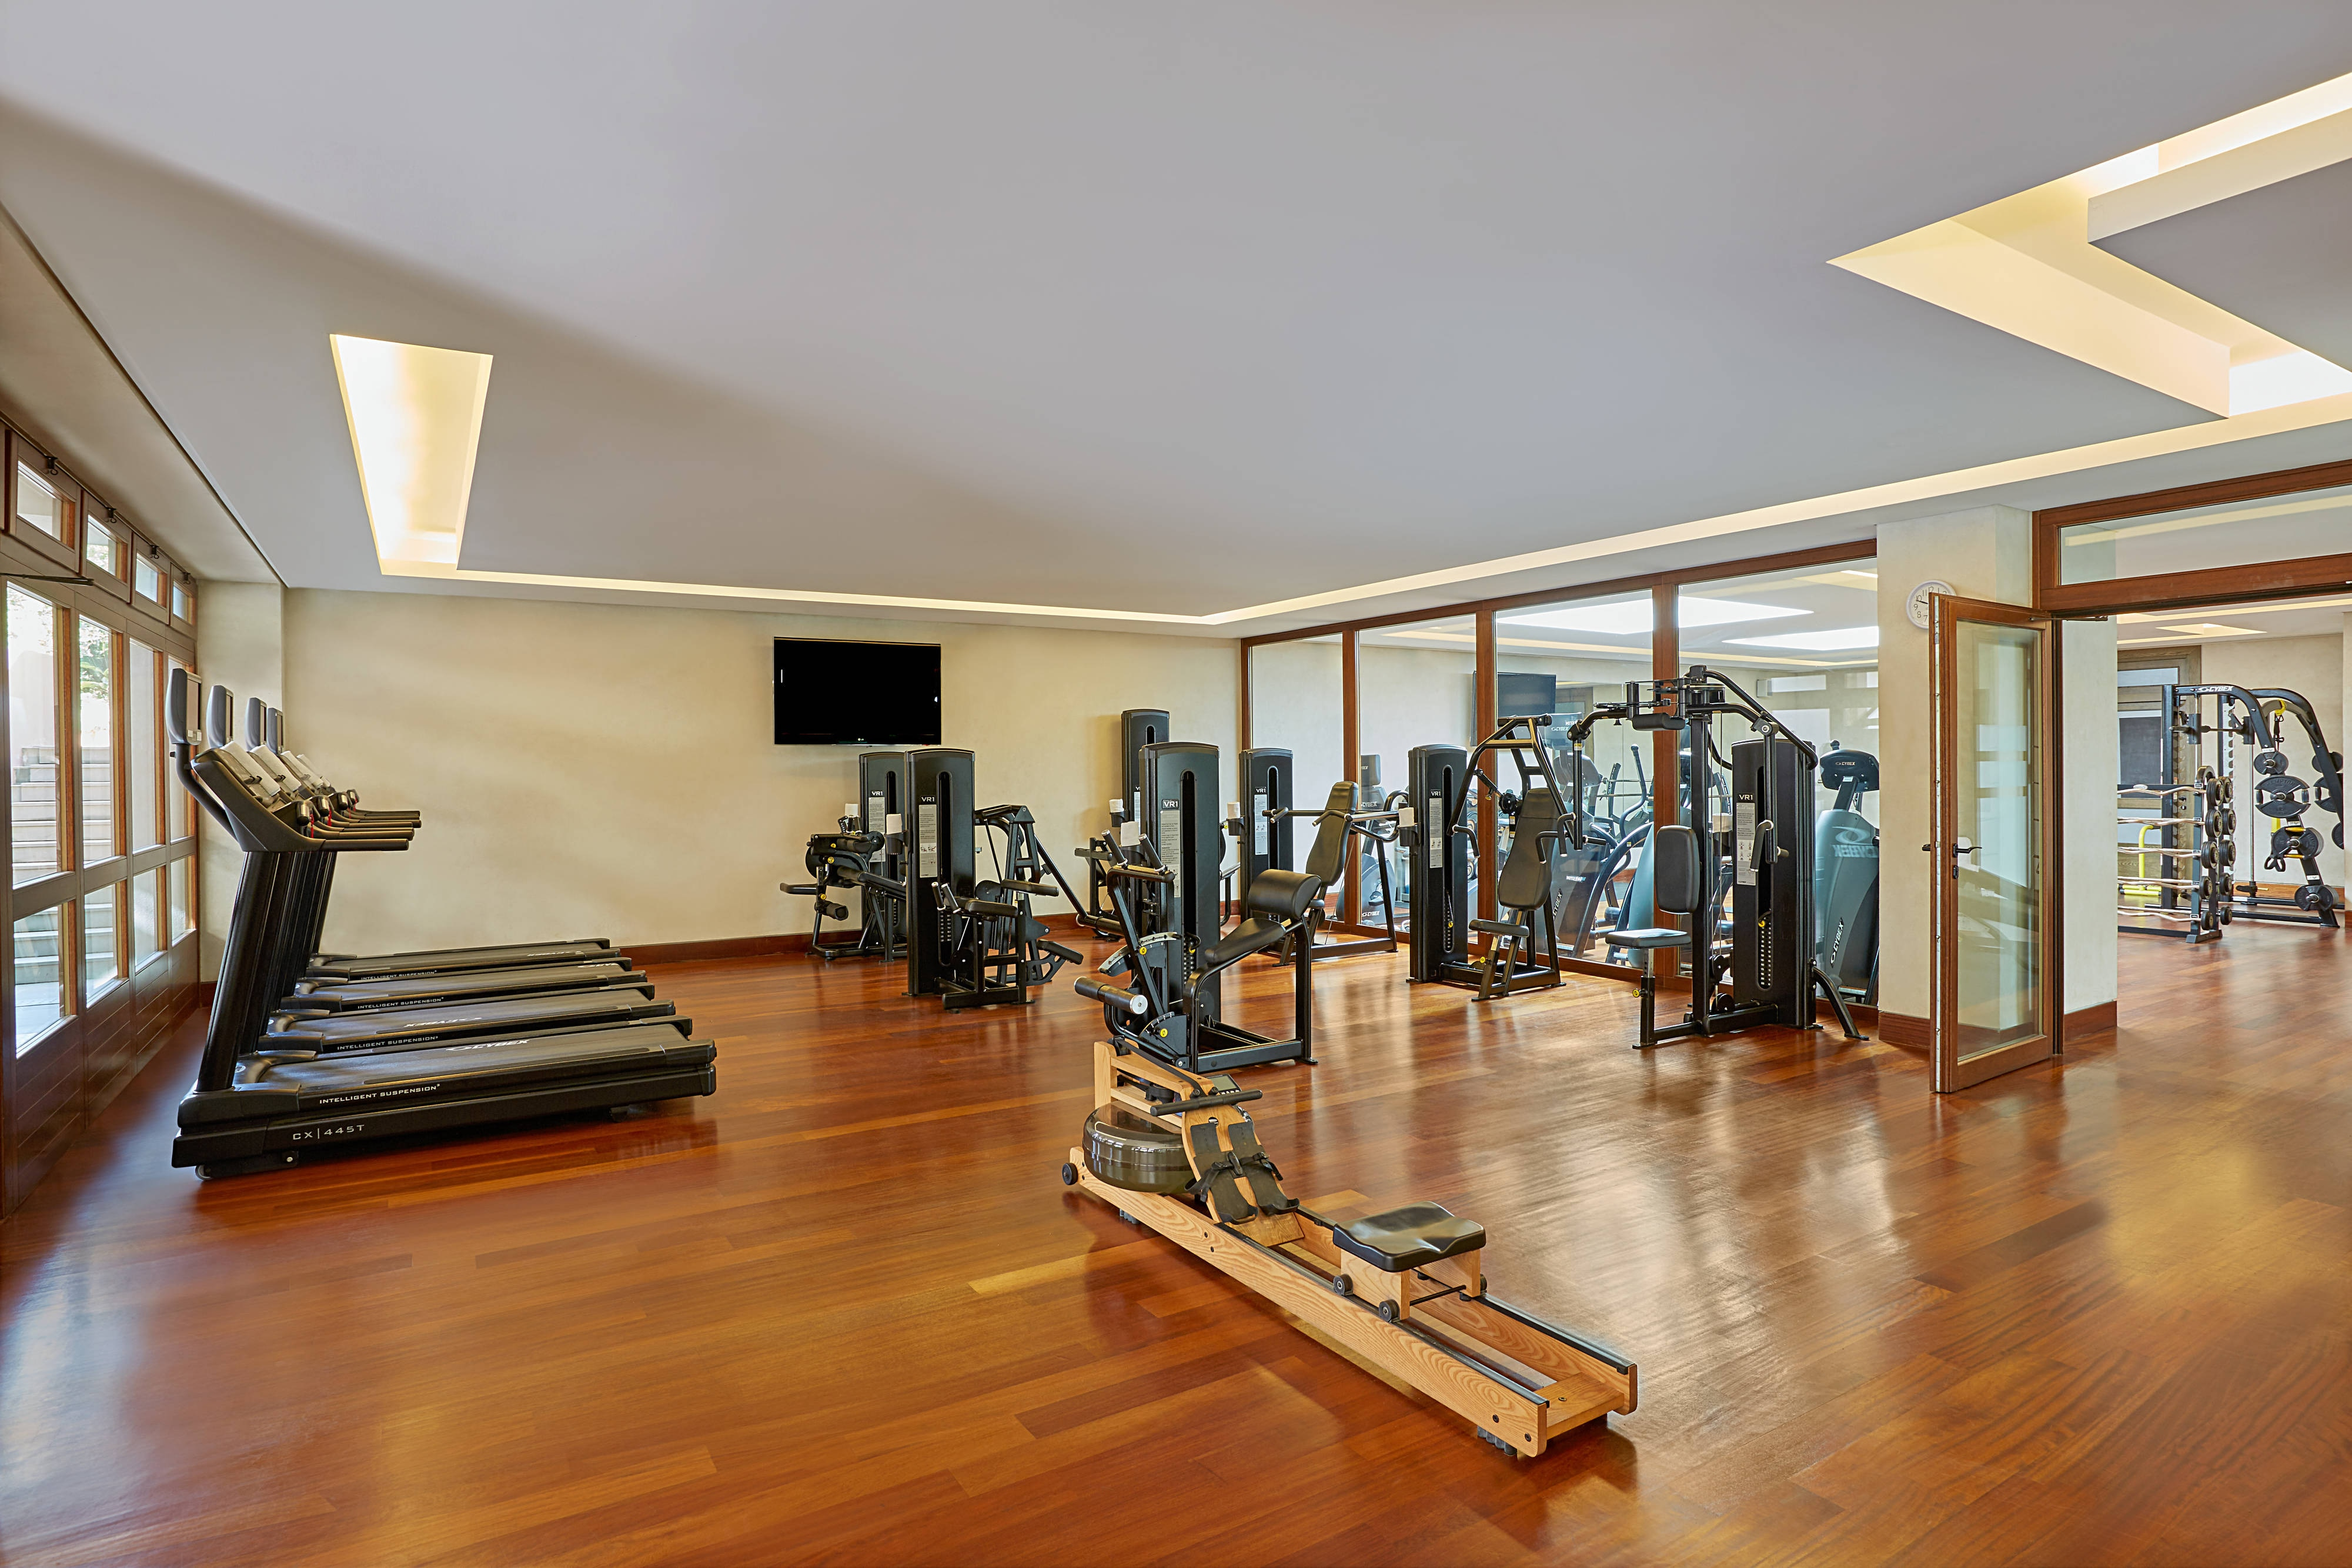 WestinWorkOUT